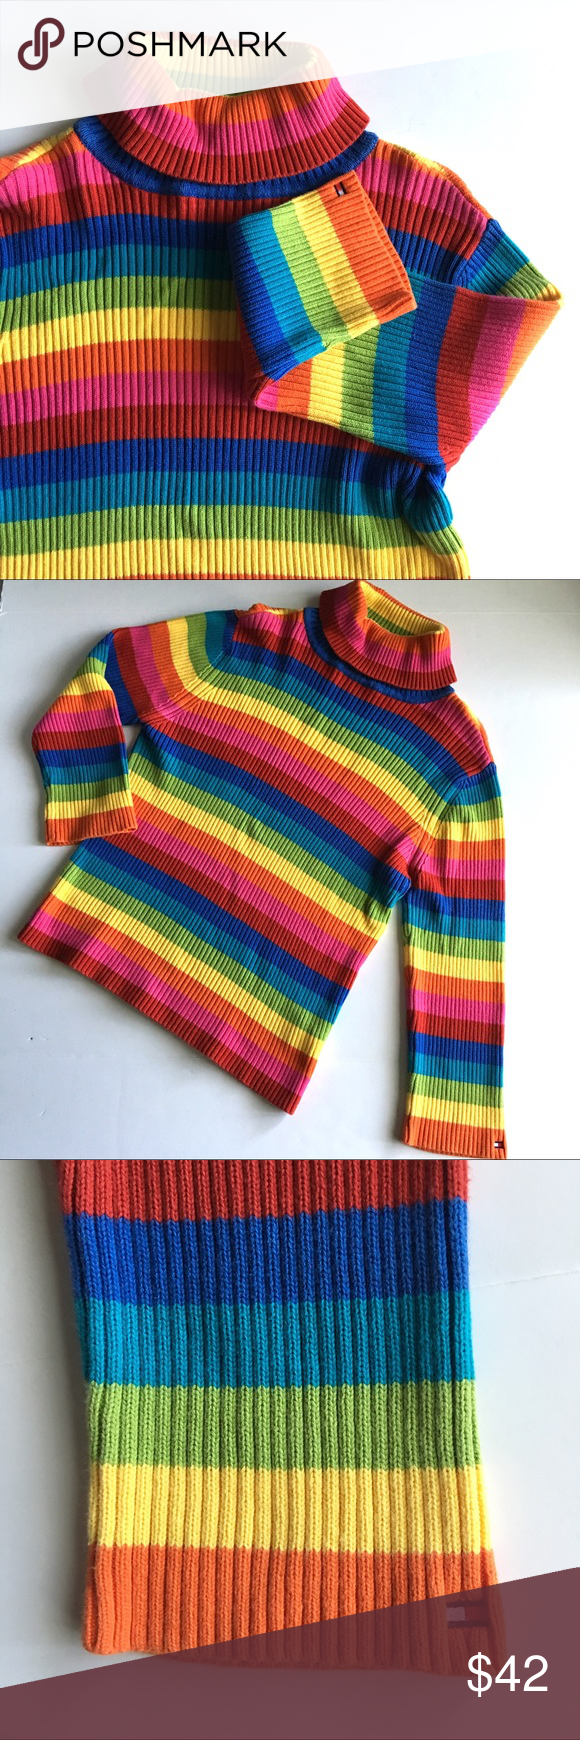 ❌SOLD❌ € Tommy Hilfiger Rainbow Striped Turtleneck | Striped ...